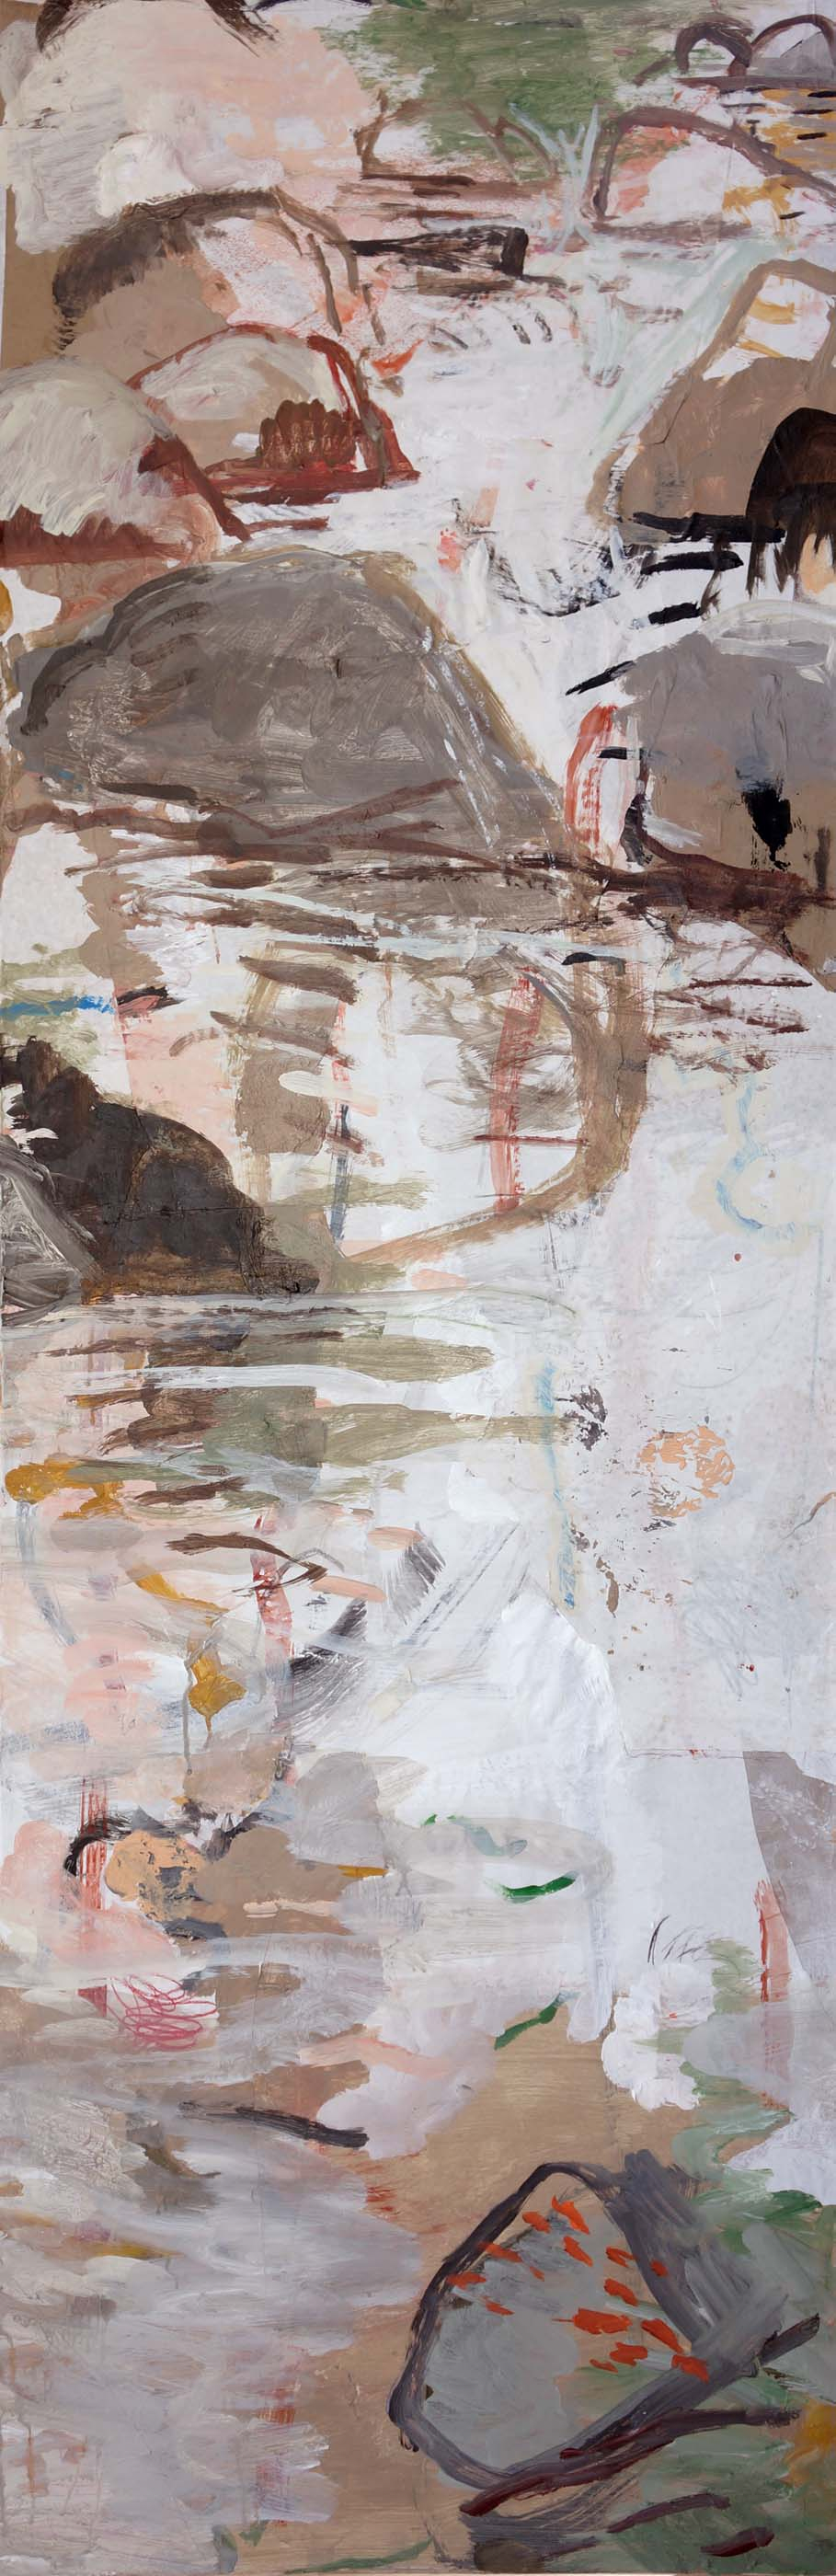 """autumn creek  78x25.5"""" january 9 state  2013 acrylic & collaged paper on canvas"""